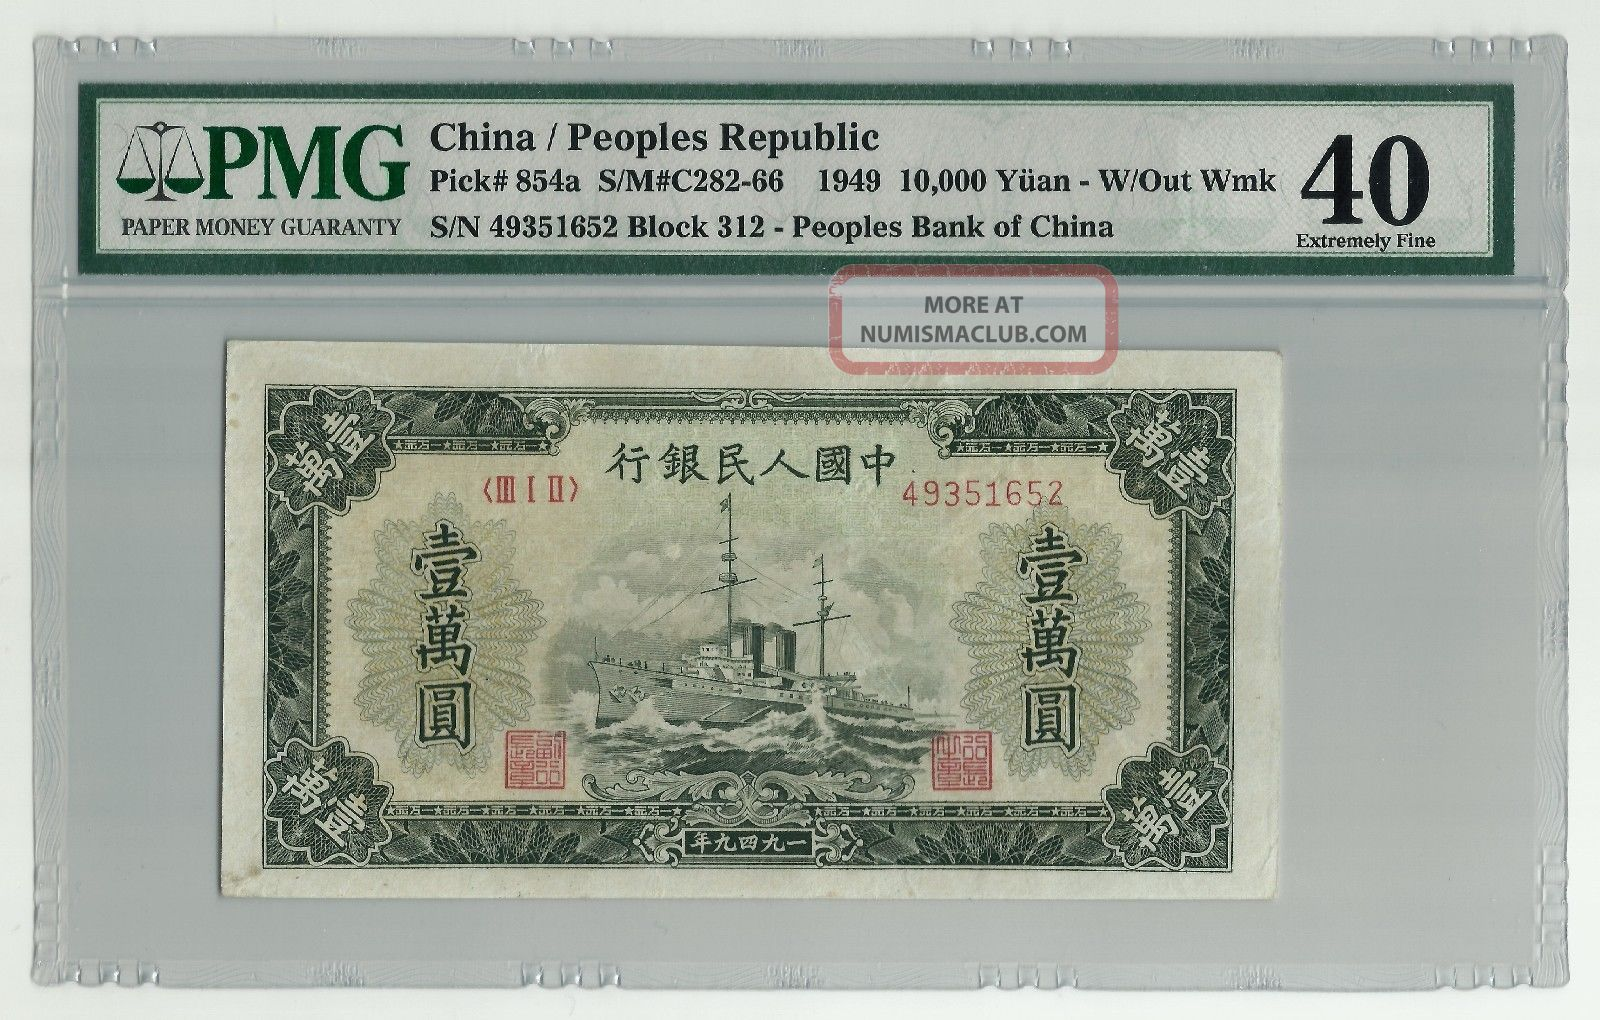 P - 854a Chinese Peoples Bank Of China 1949 10000 Yuan Pmg 40 Extremely Fine Asia photo